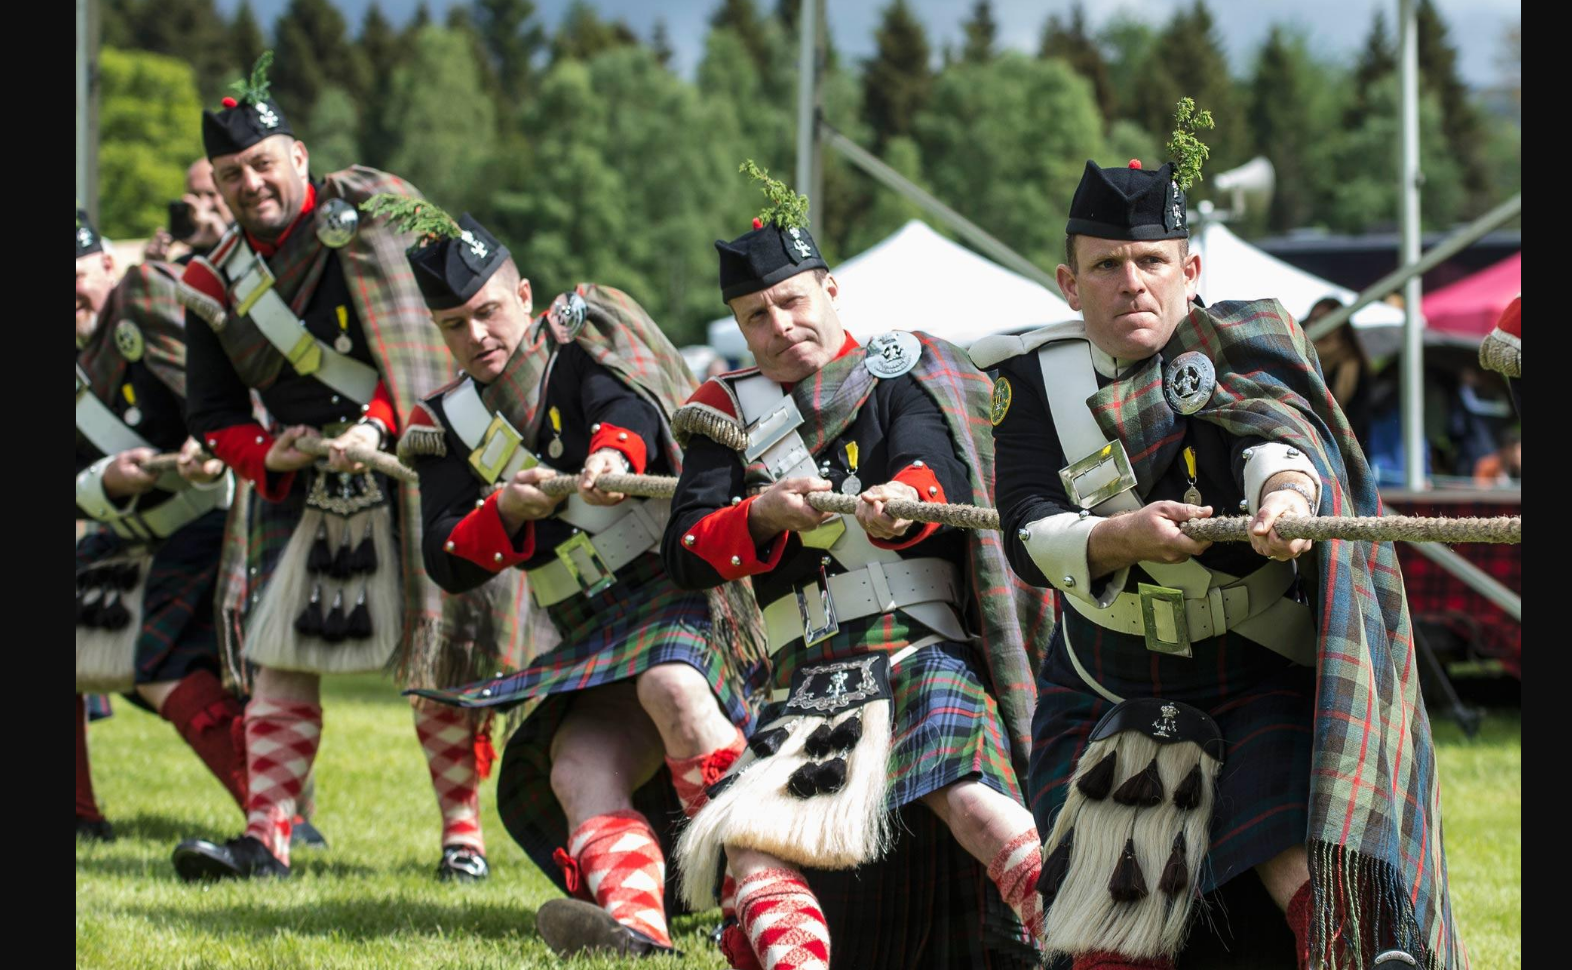 Scotland Highland Games